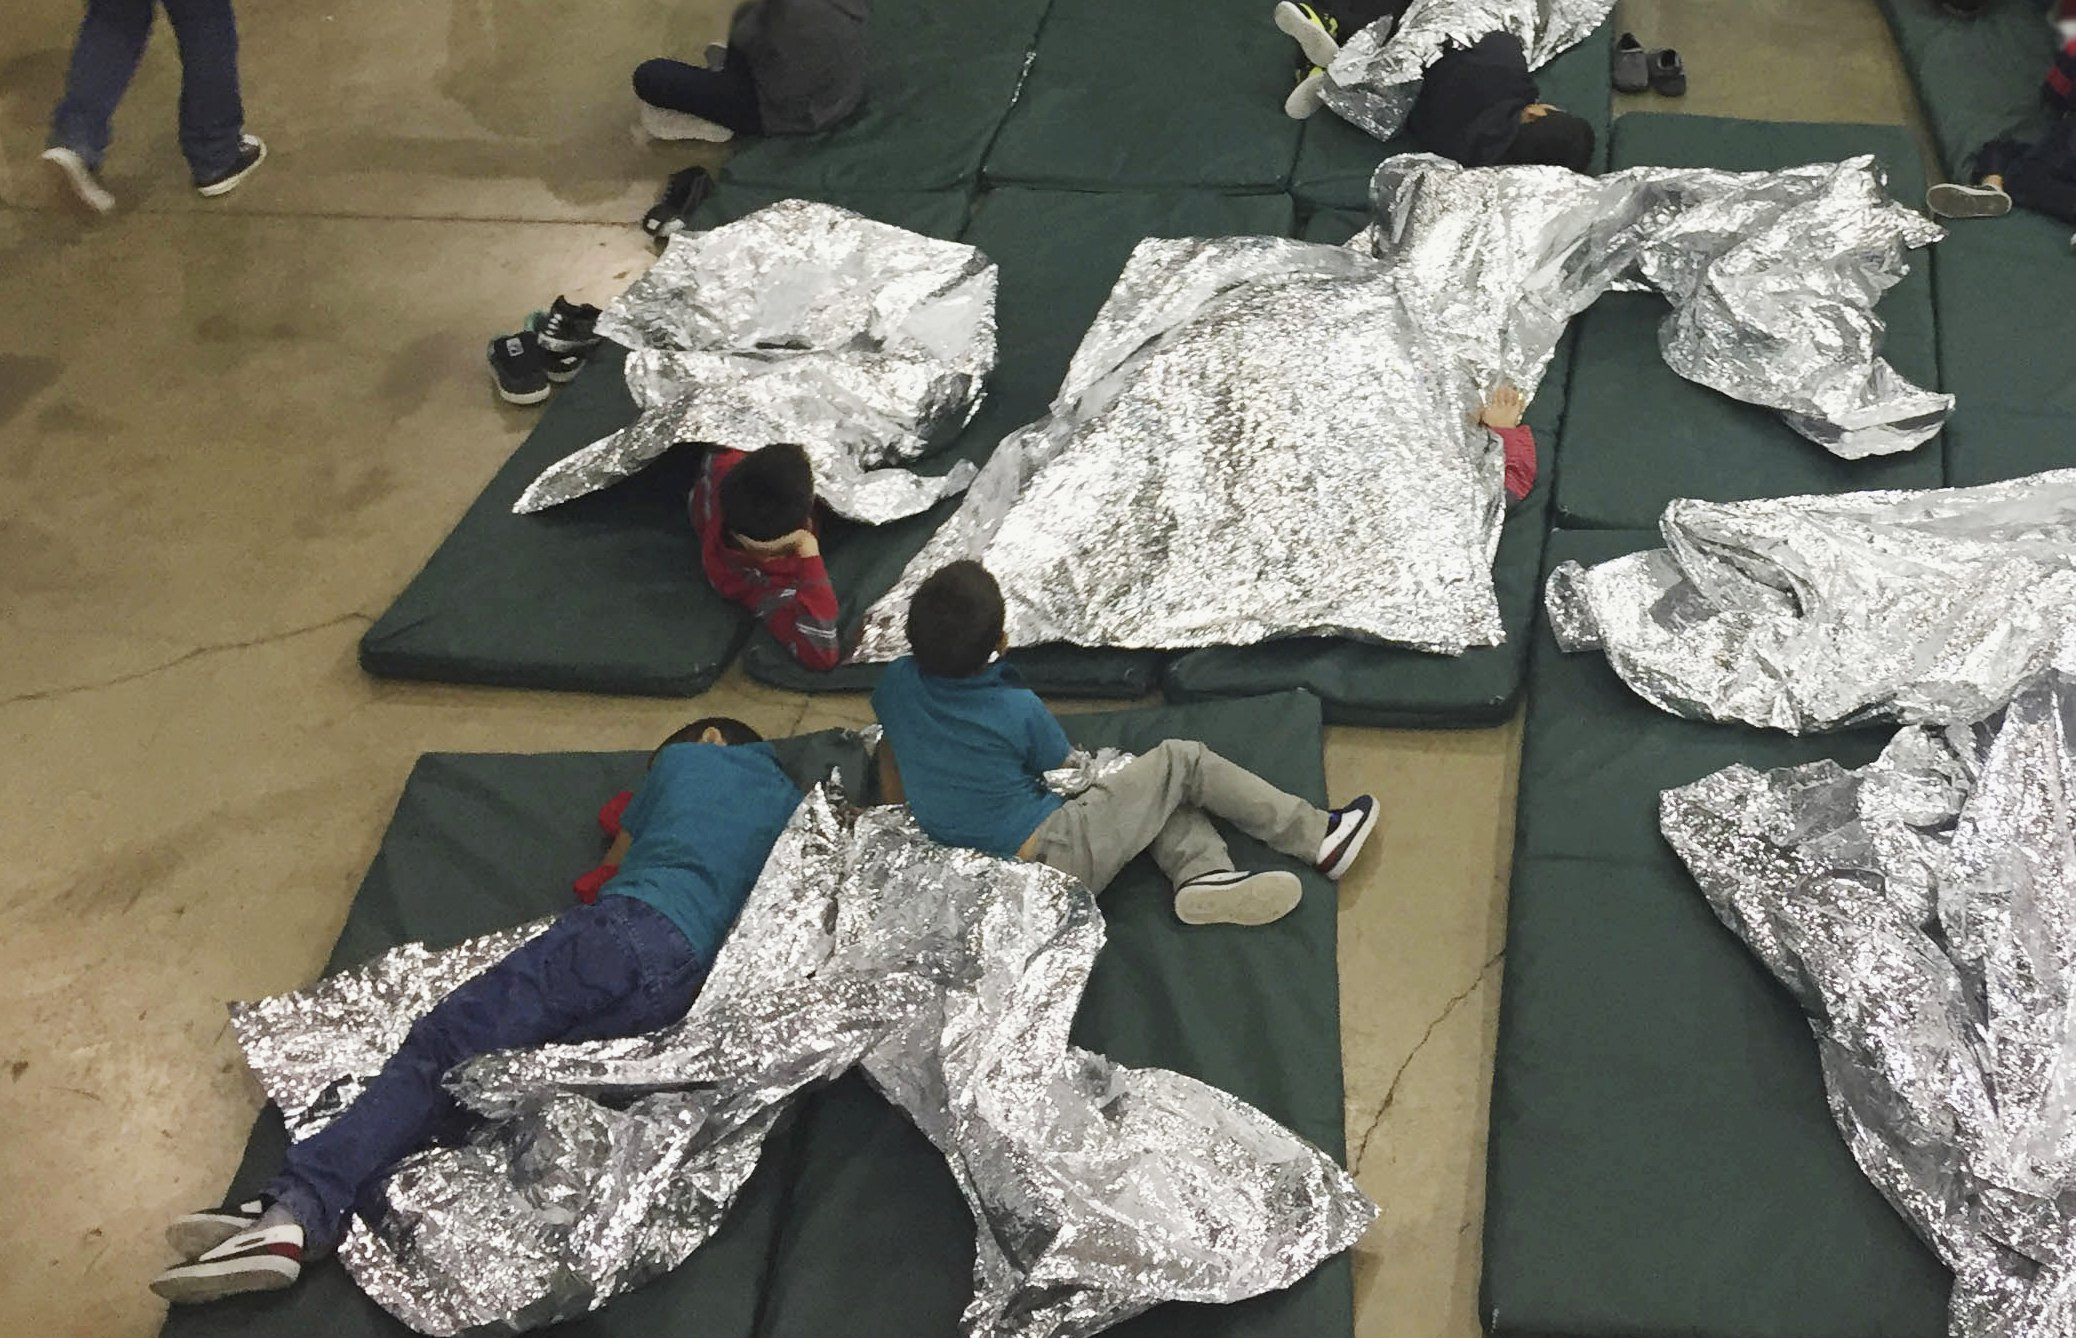 FILE - In this Sunday, June 17, 2018, file photo provided by U.S. Customs and Border Protection, people who've been taken into custody related to cases of illegal entry into the United States, rest in one of the cages at a facility in McAllen, Texas. Child welfare agencies across America make wrenching decisions every day to separate children from their parents. But those agencies have ways of minimizing the trauma that aren't being employed by the Trump administration at the Mexican border. (U.S. Customs and Border Protection's Rio Grande Valley Sector via AP, File)